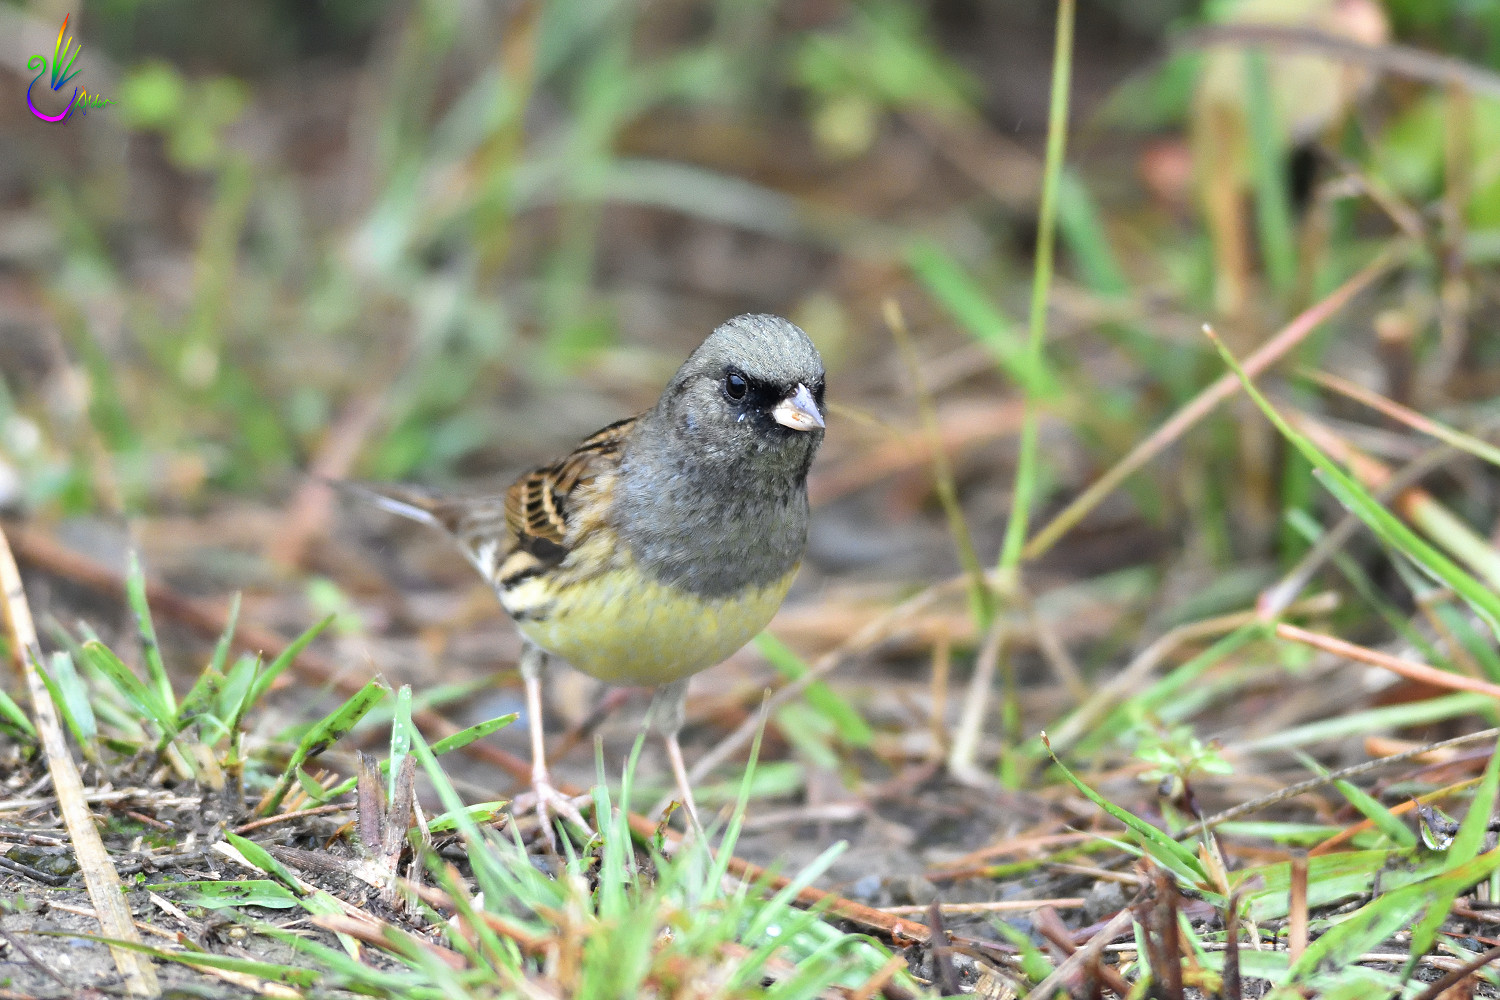 Black-faced_Bunting_7547